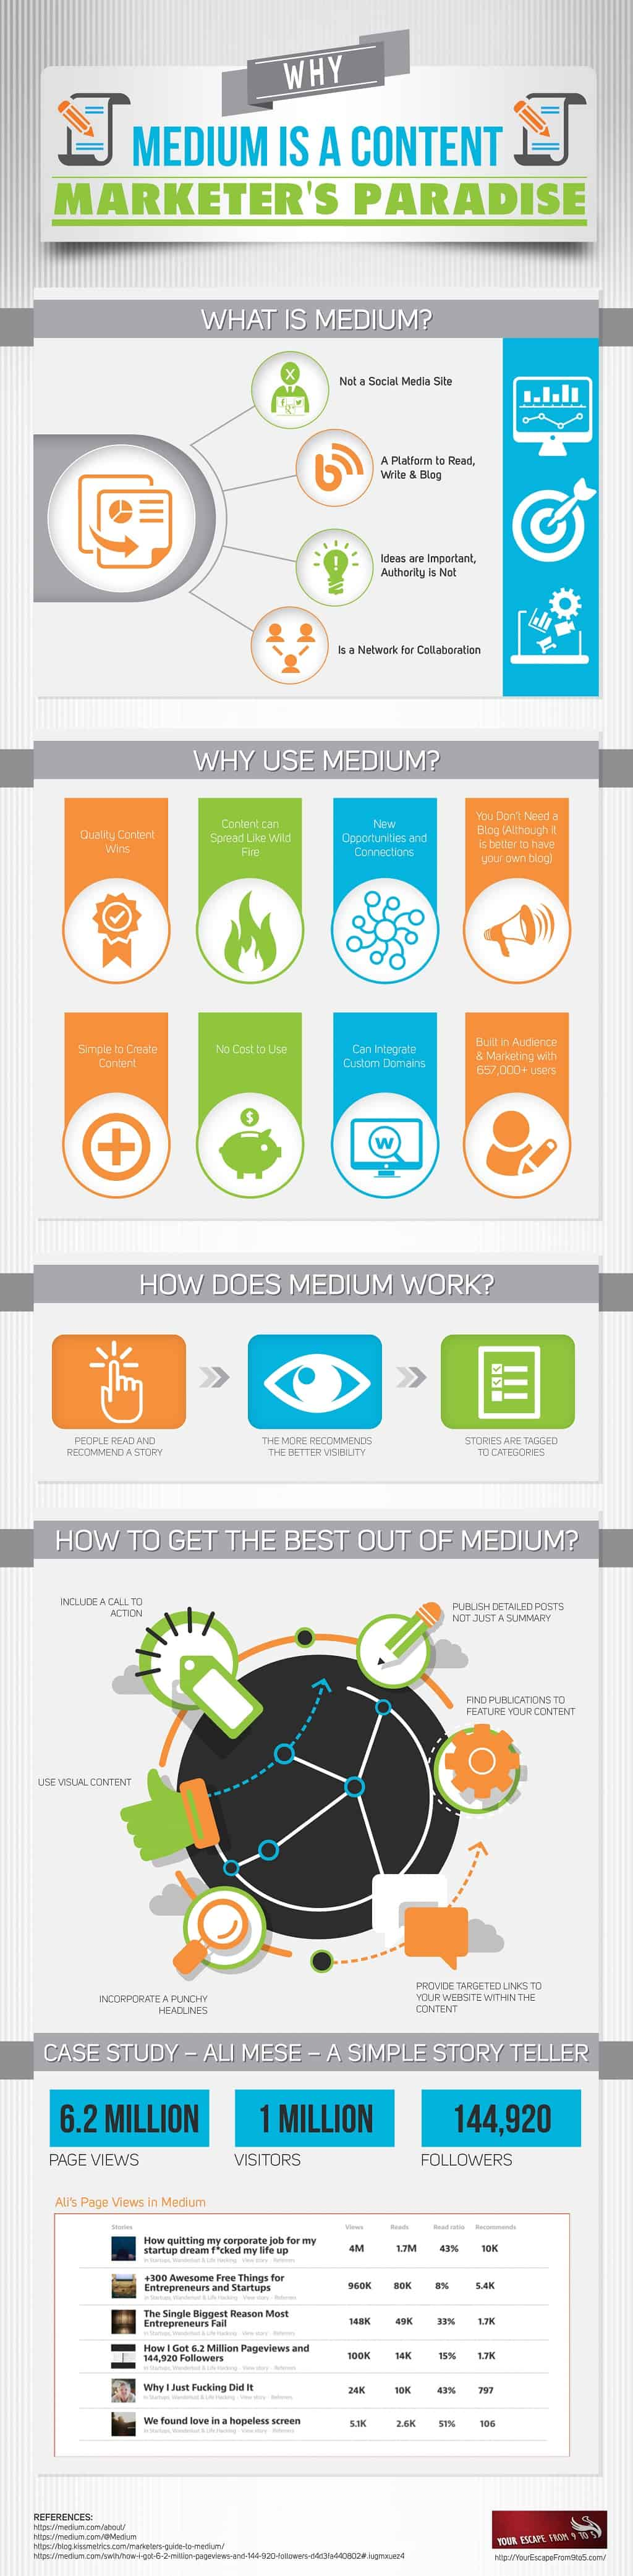 Medium for content distribution and amplification